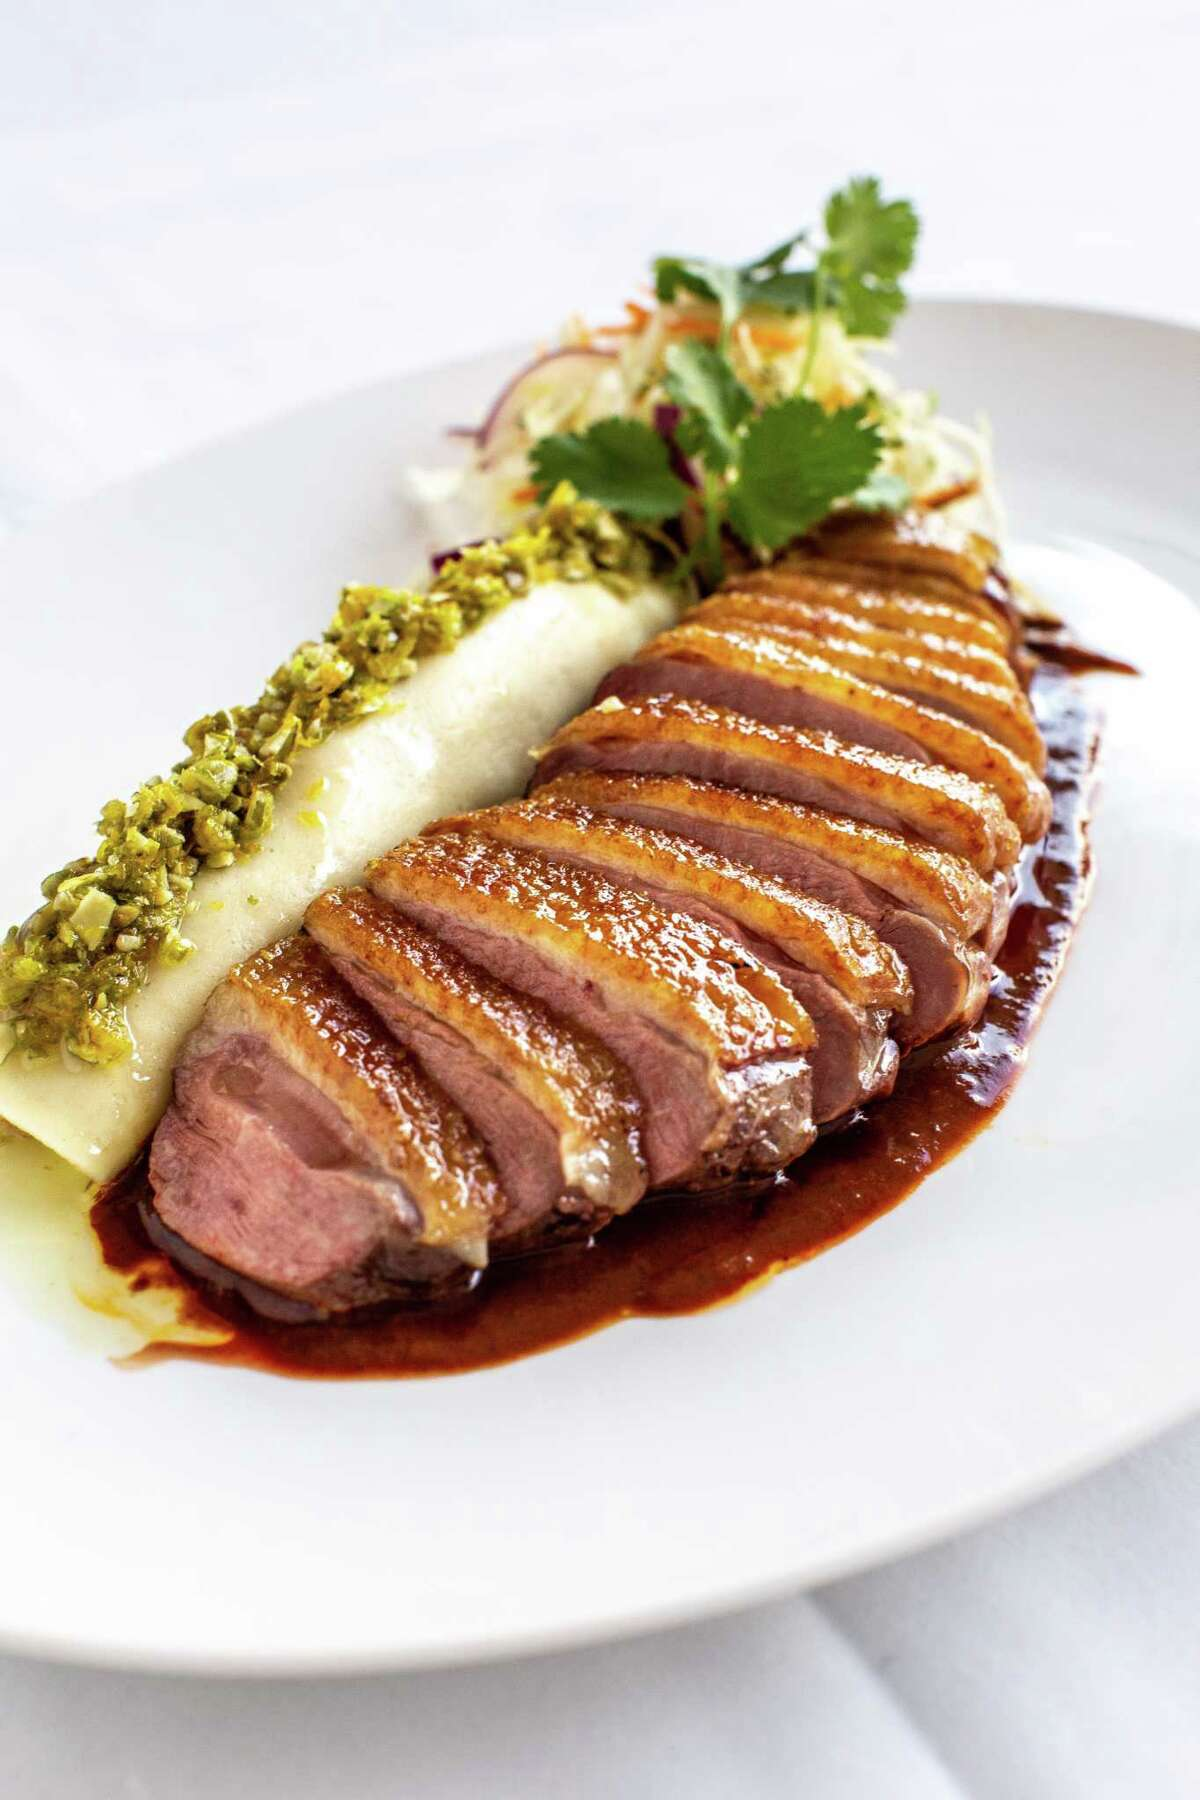 Roasted duck breast with cocoa mole at The Annie Cafe & Bar, a new era for the former Cafe Annie opening Sept. 24 at 1800 Post Oak.